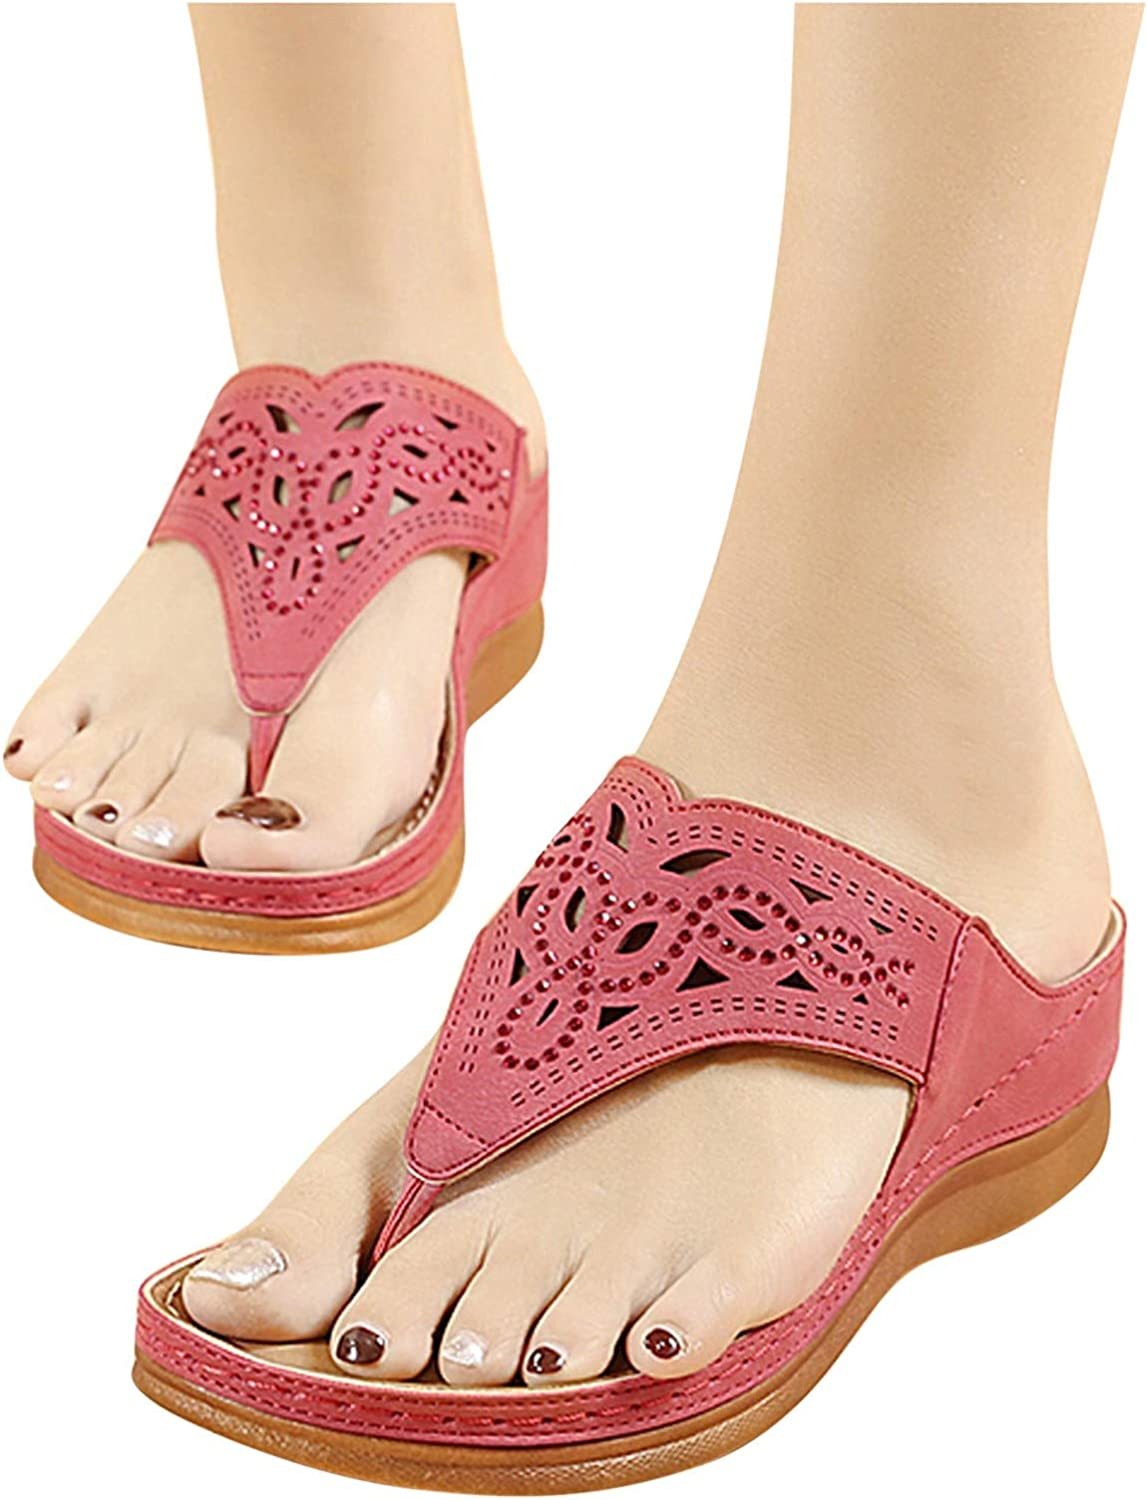 Xinantime Women Flip-Flops Summer Slip-On Slide Wedges Beach Open Toe Breathable Sandals Embroidery Shoes